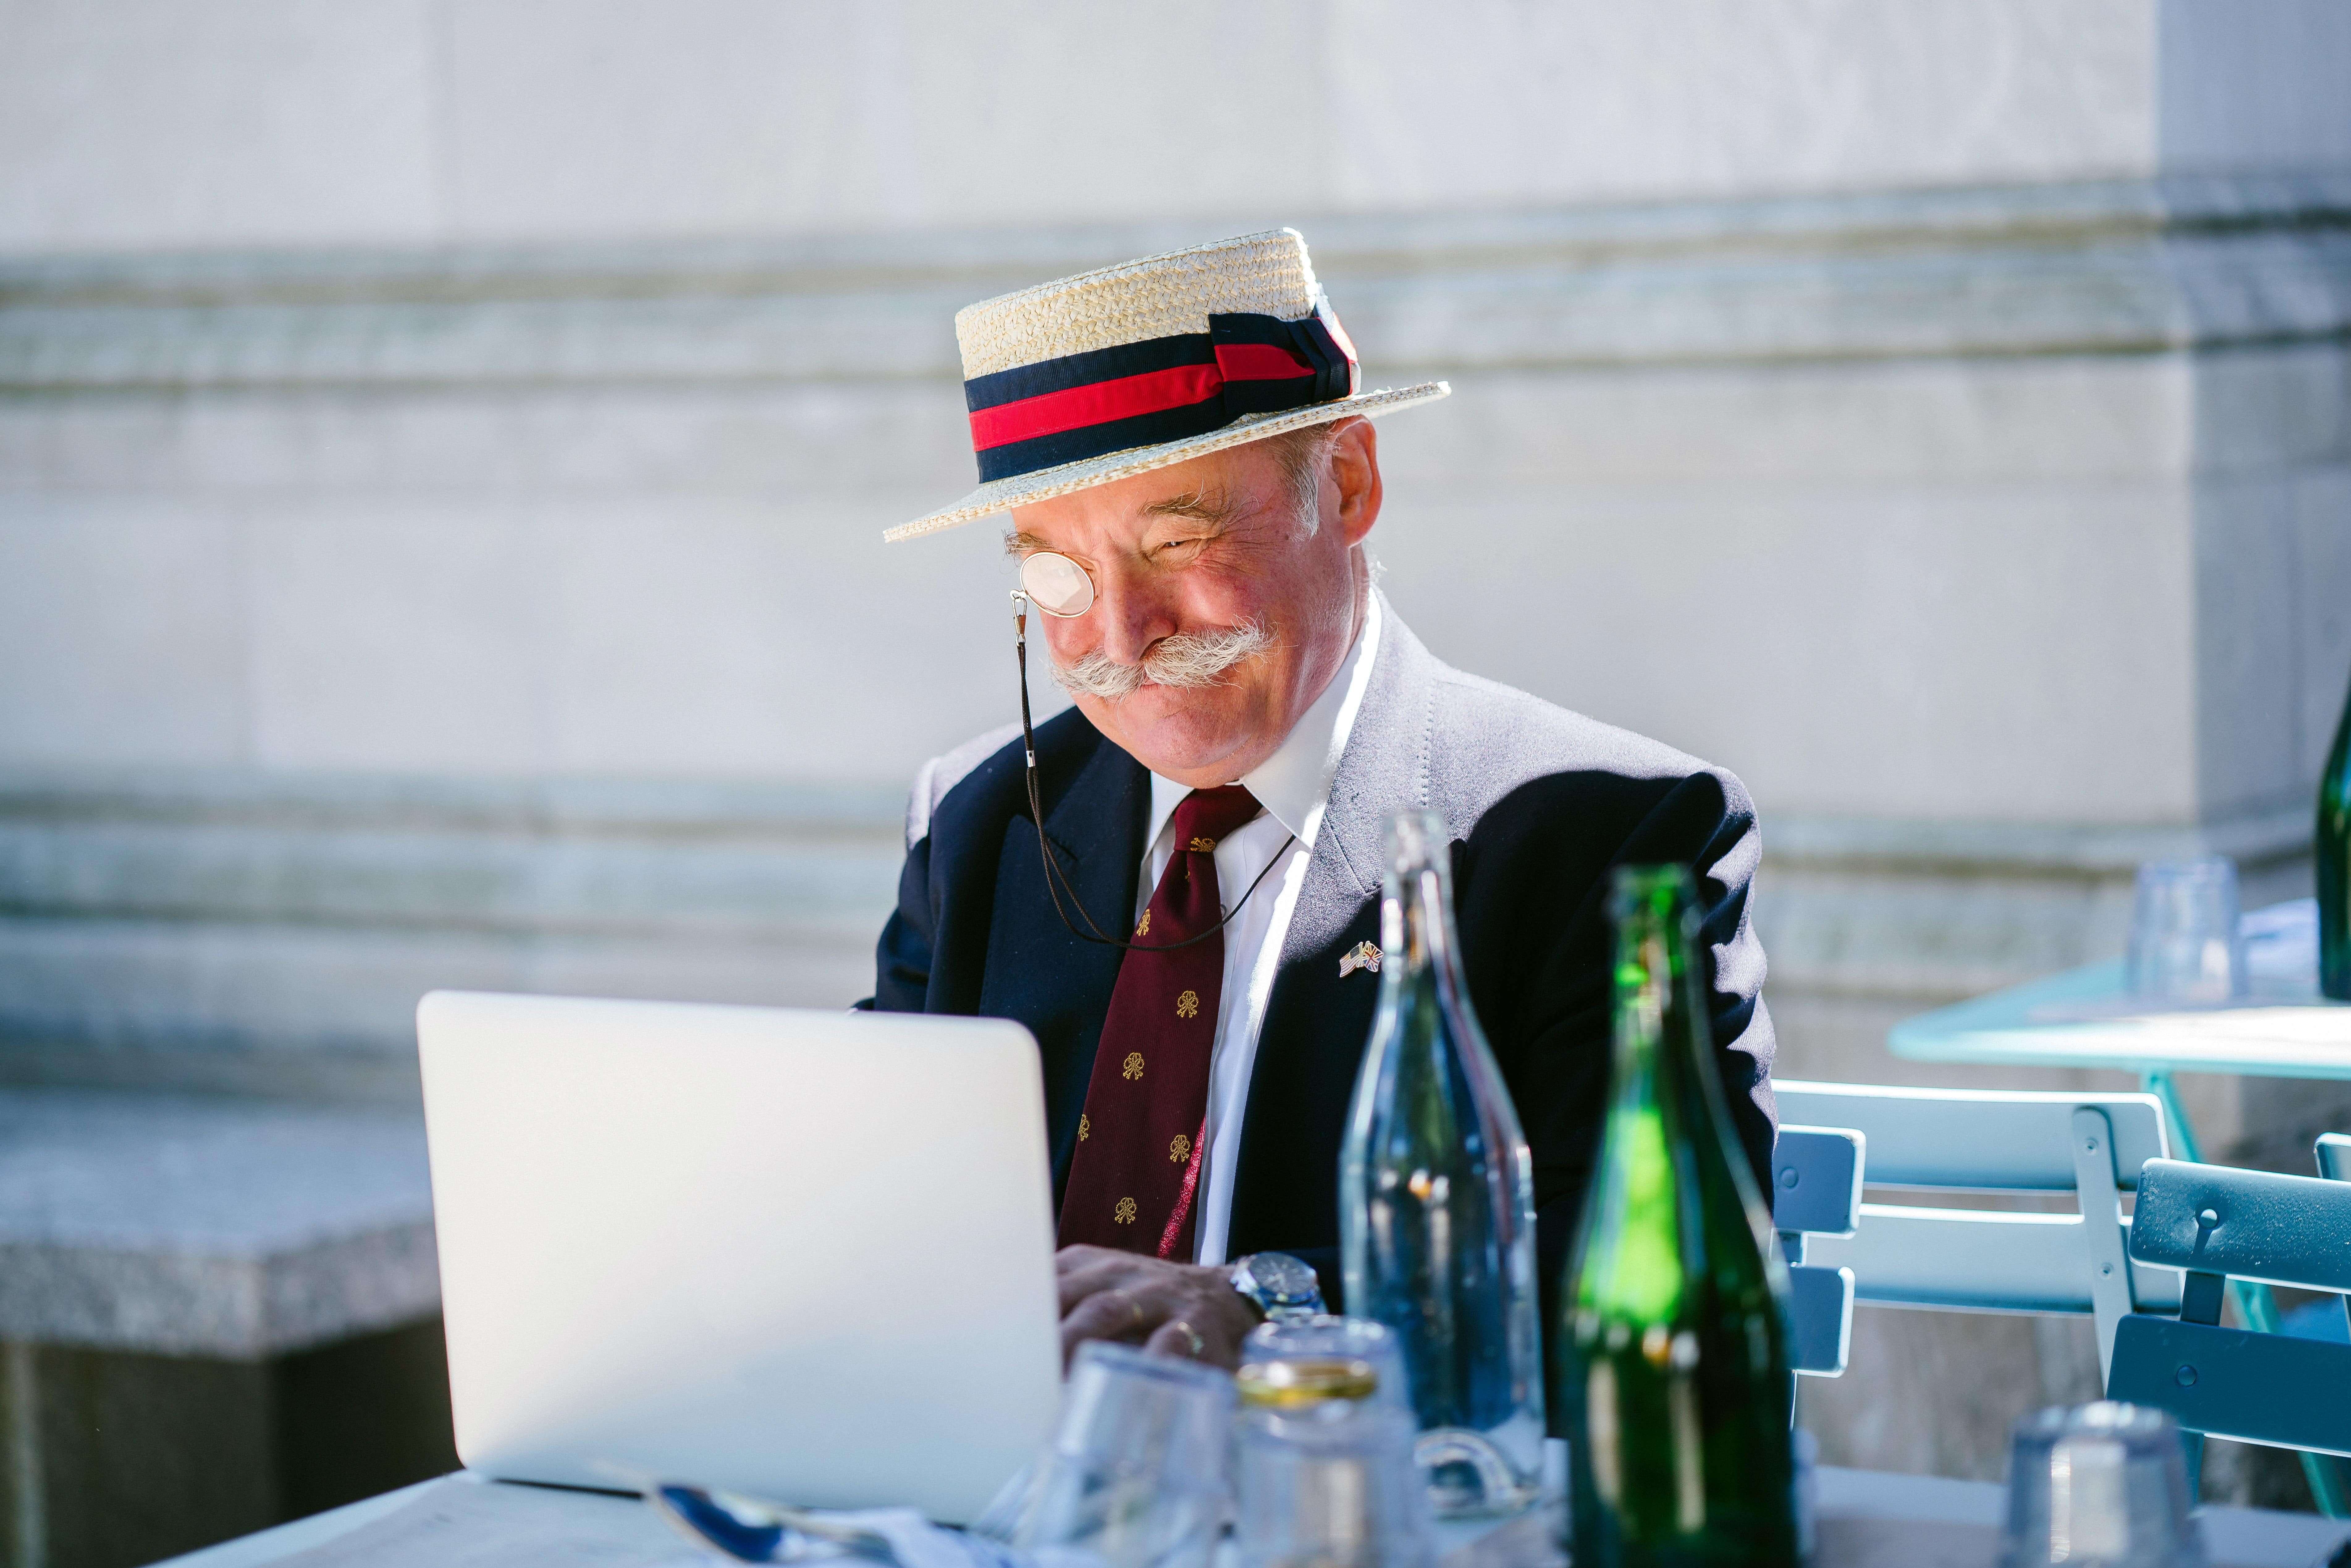 Man wearing a bowler hat and magnifying glass on laptop